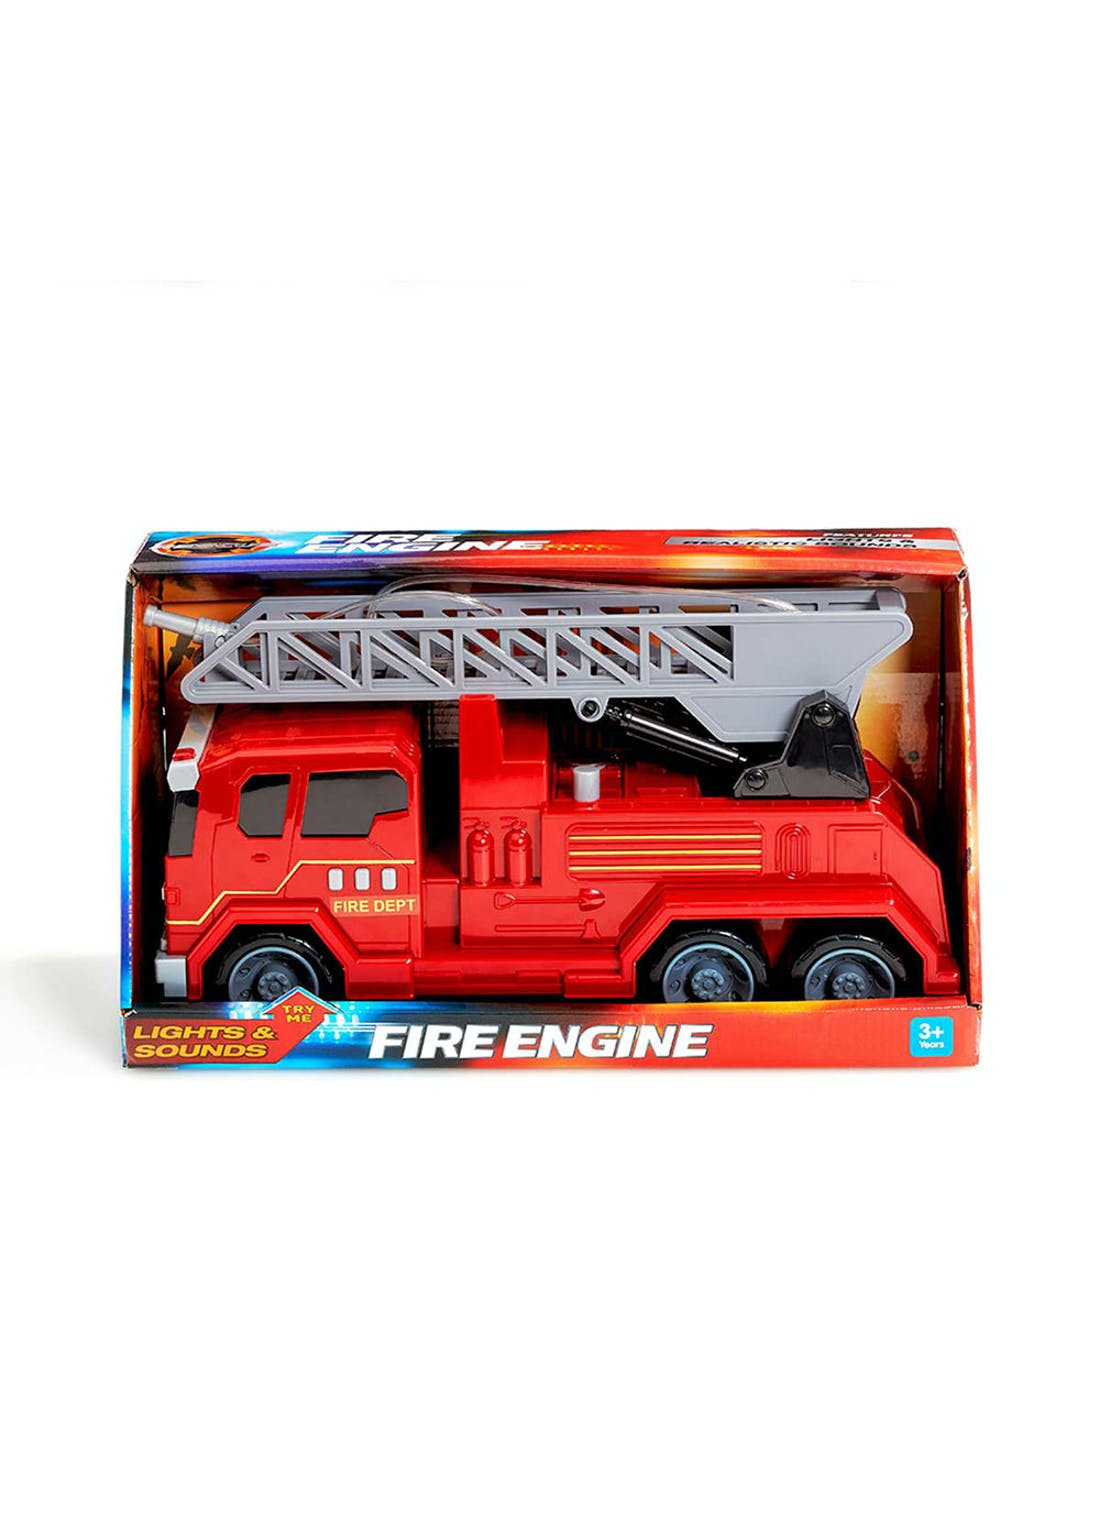 Friction Lights and Sounds Fire Truck (39cm x 21cm x 15cm)